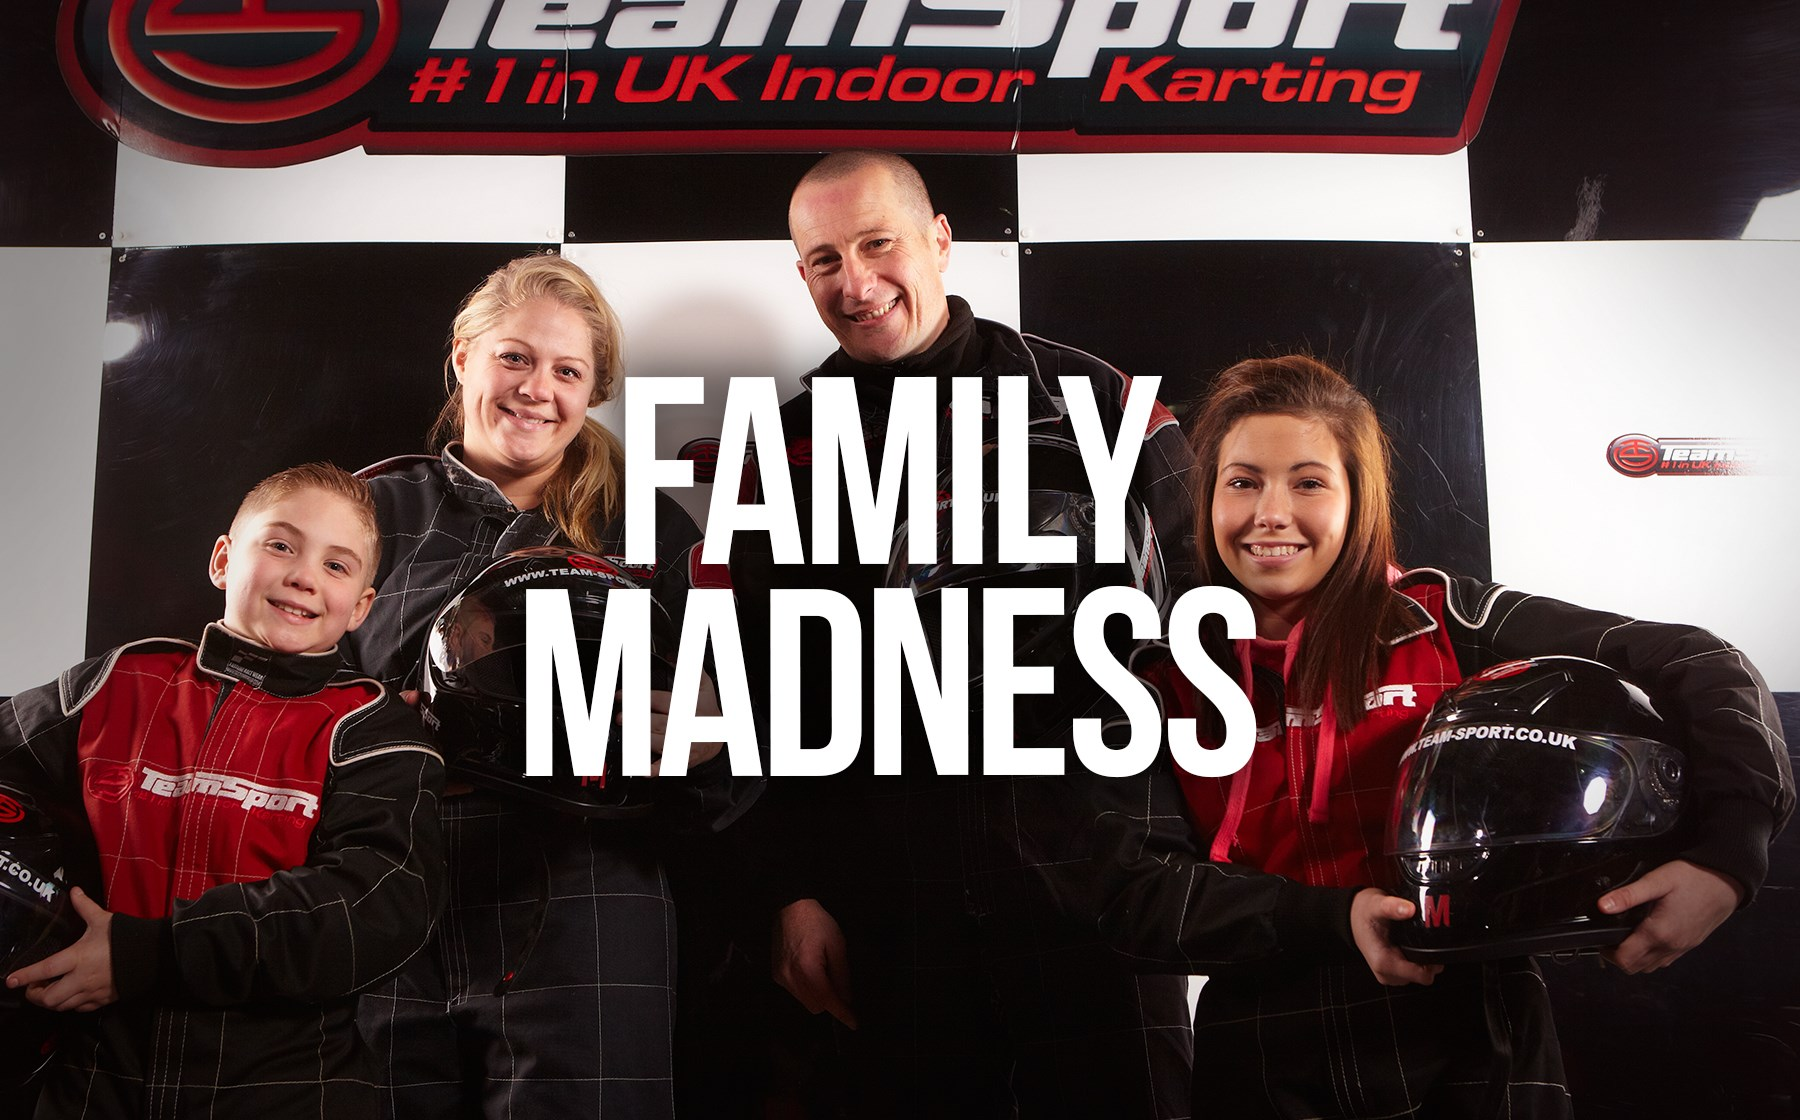 Kids Go Karting - Family Madness